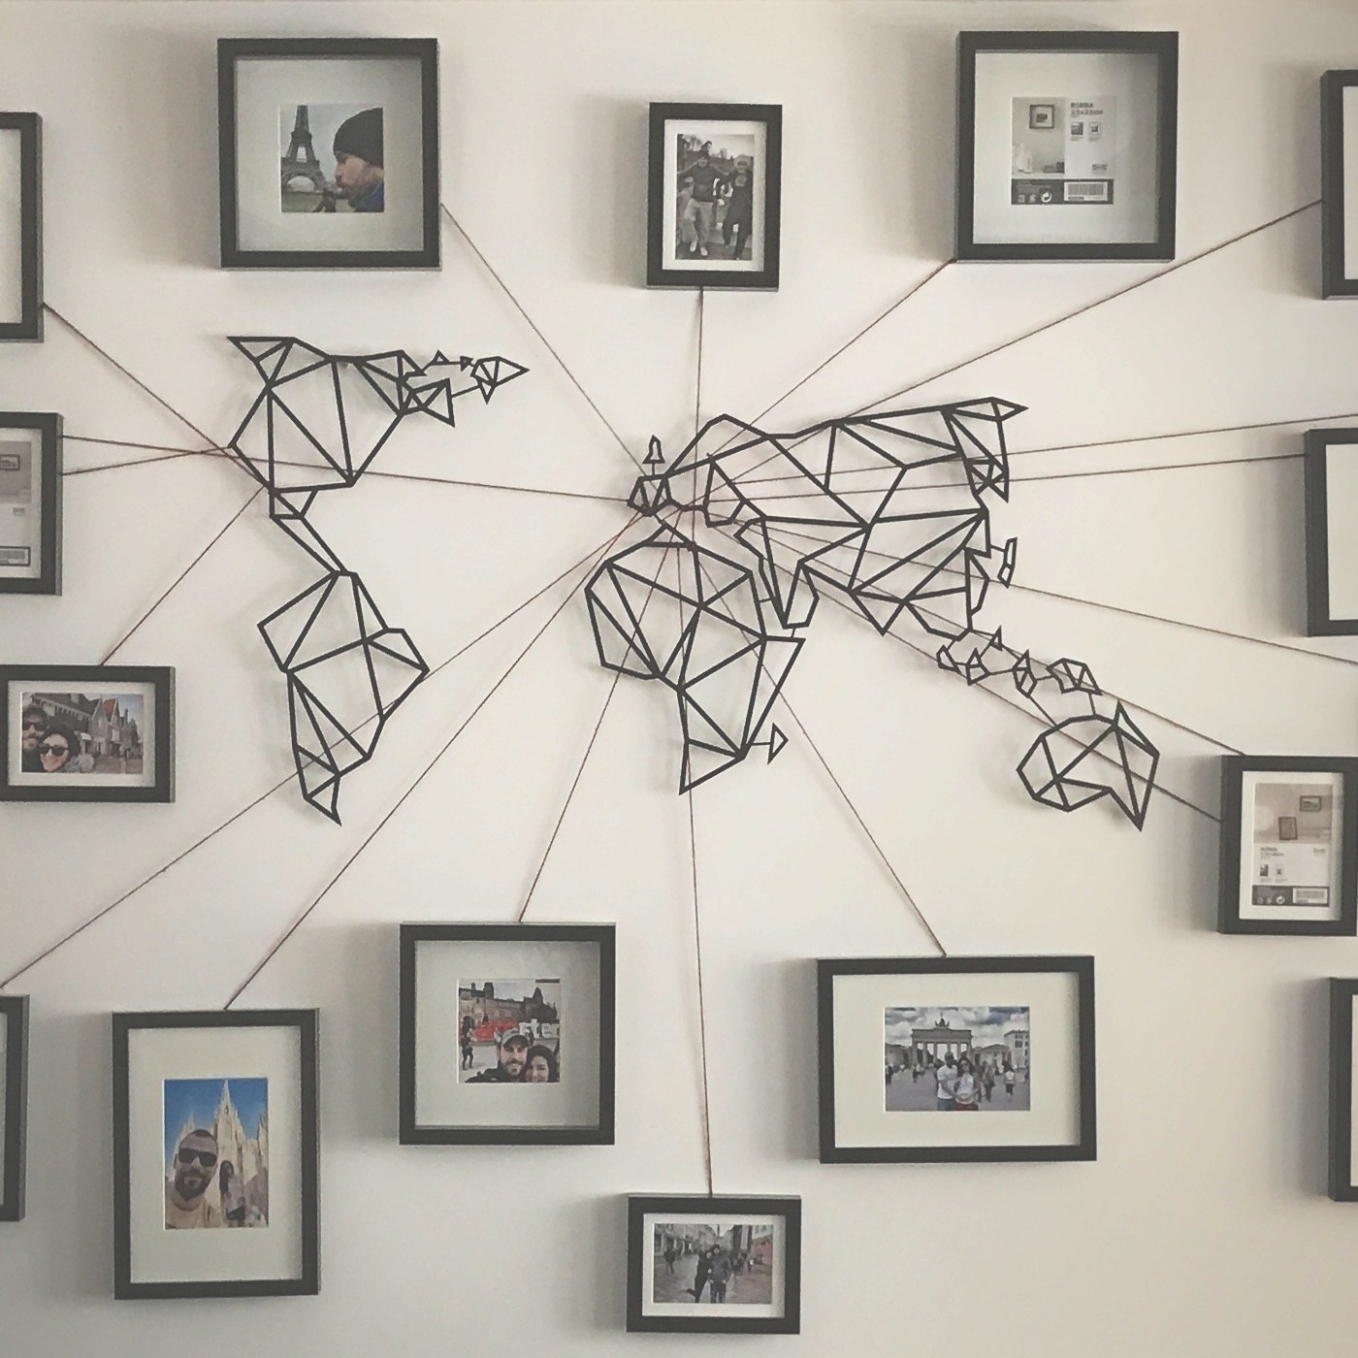 Wall Art World Map For Best And Newest Photo Gallery Of Wall Art Map World Viewing 11 45 Photos For (View 7 of 15)